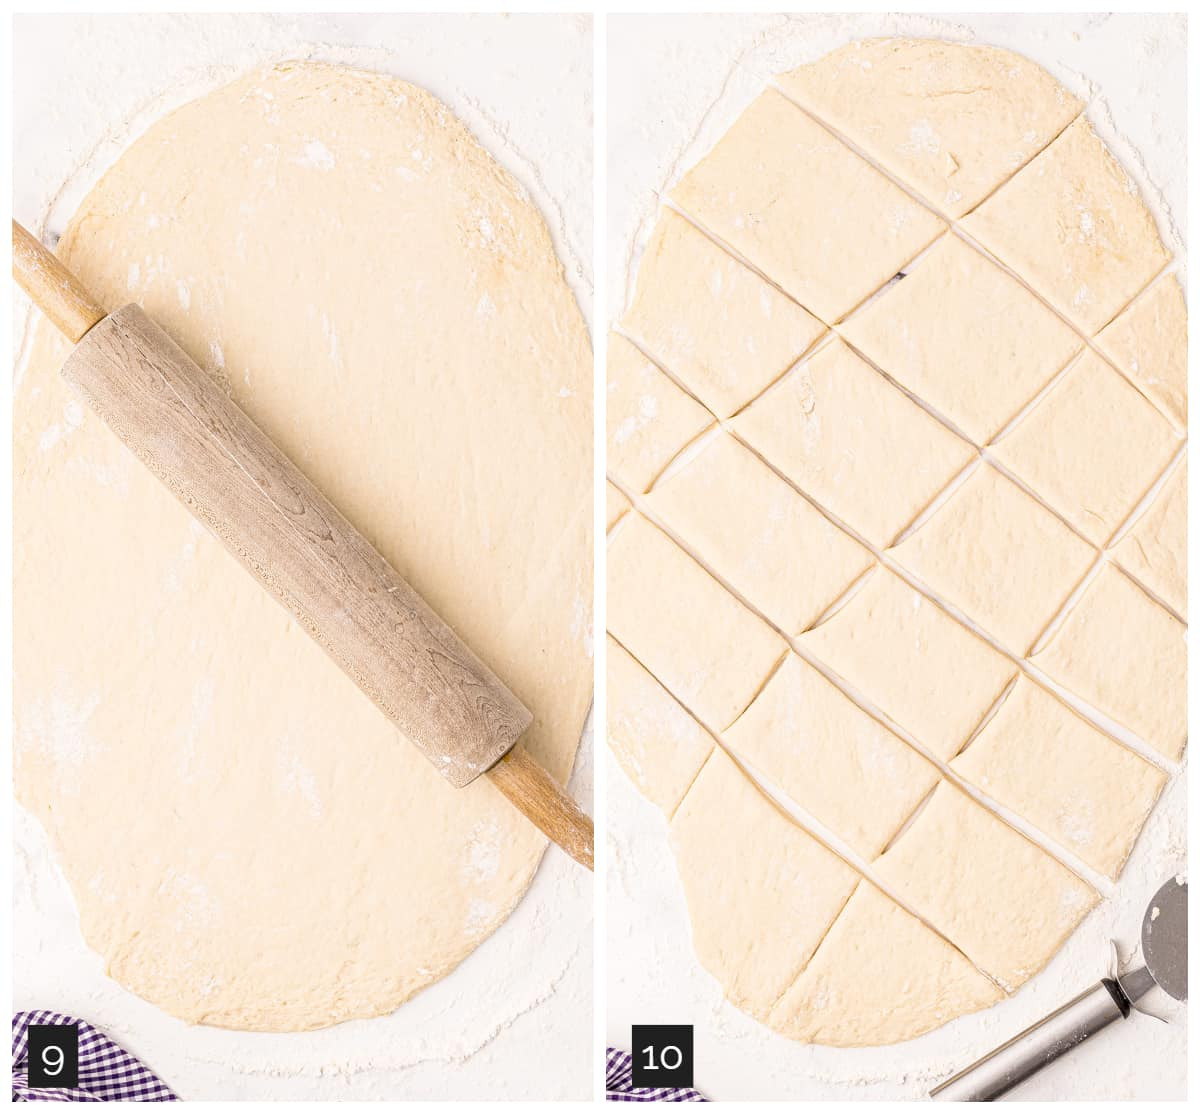 Collage showing (left) dough rolled out with a rolling pin on top; (right) dough cut into rectangles.